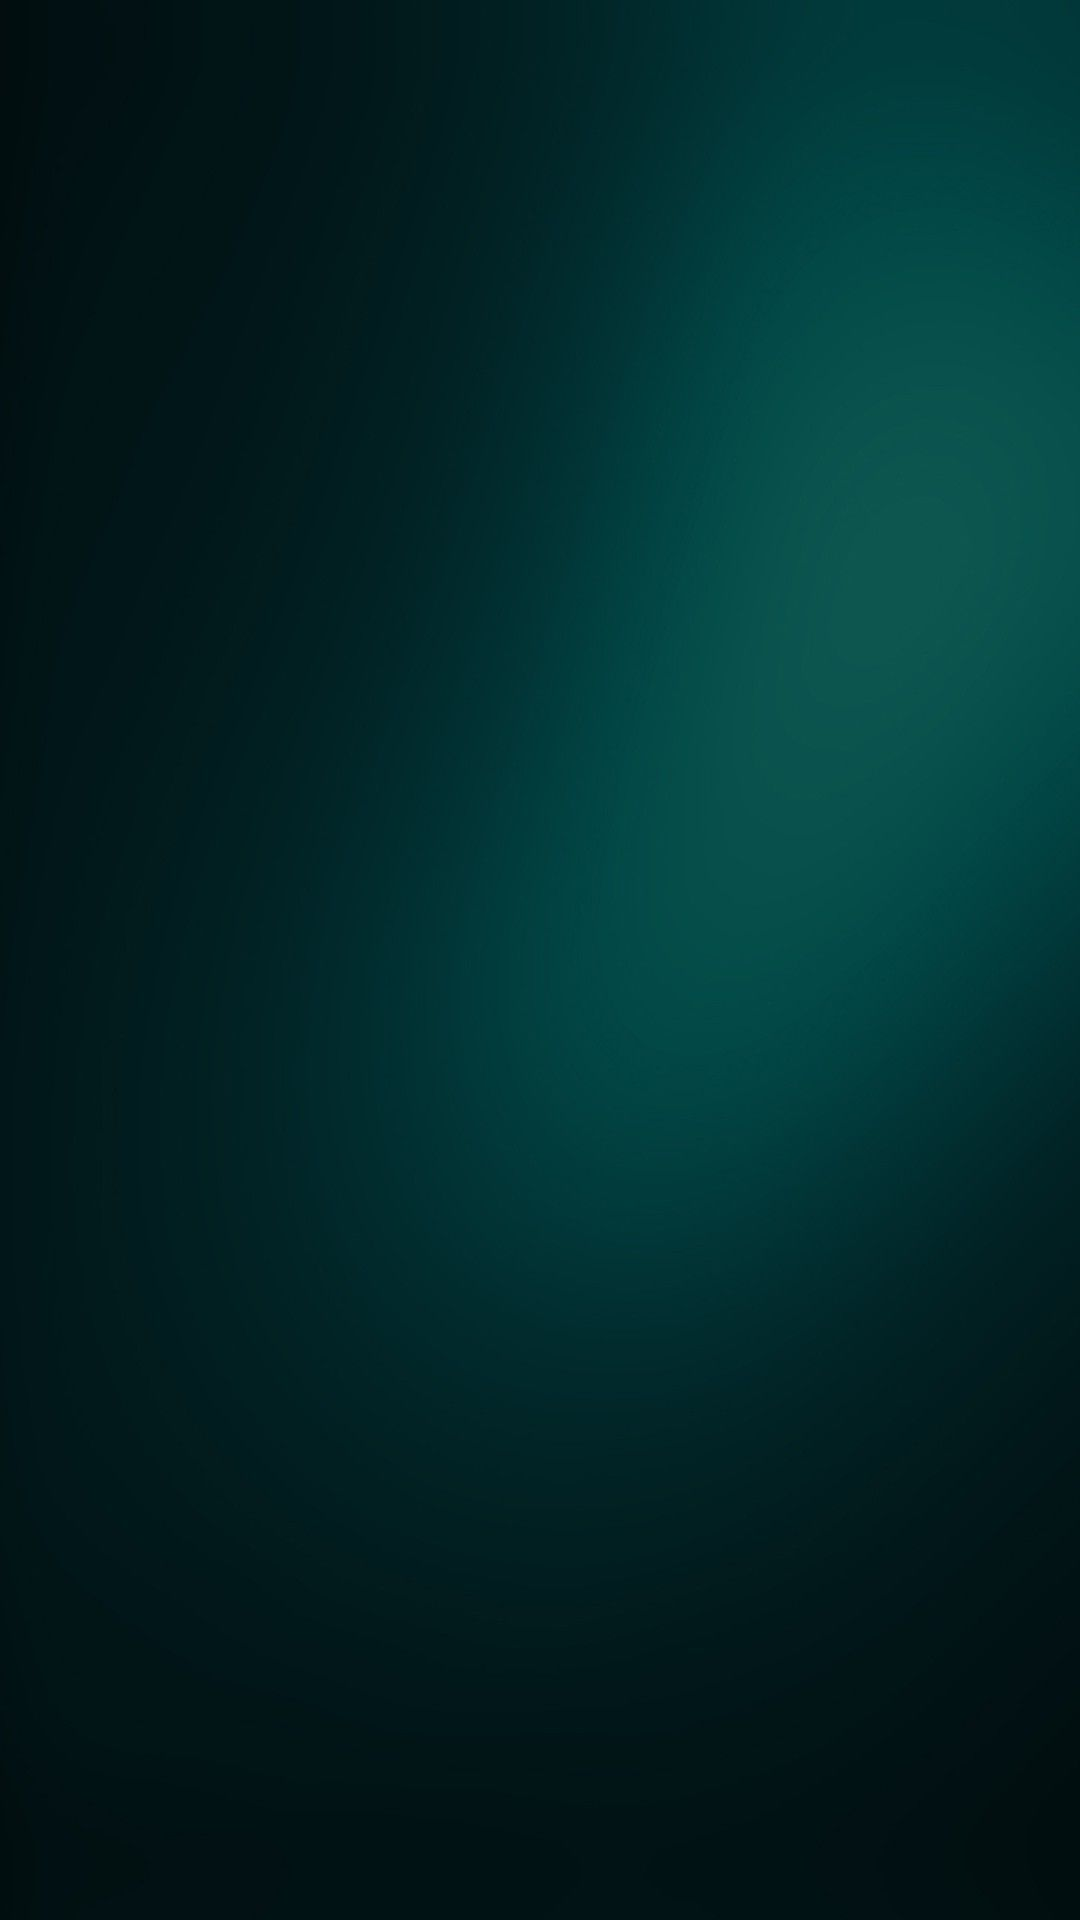 Dark Green Iphone Wallpapers Matching Paint Colors Solid Color Backgrounds Colorful Wallpaper